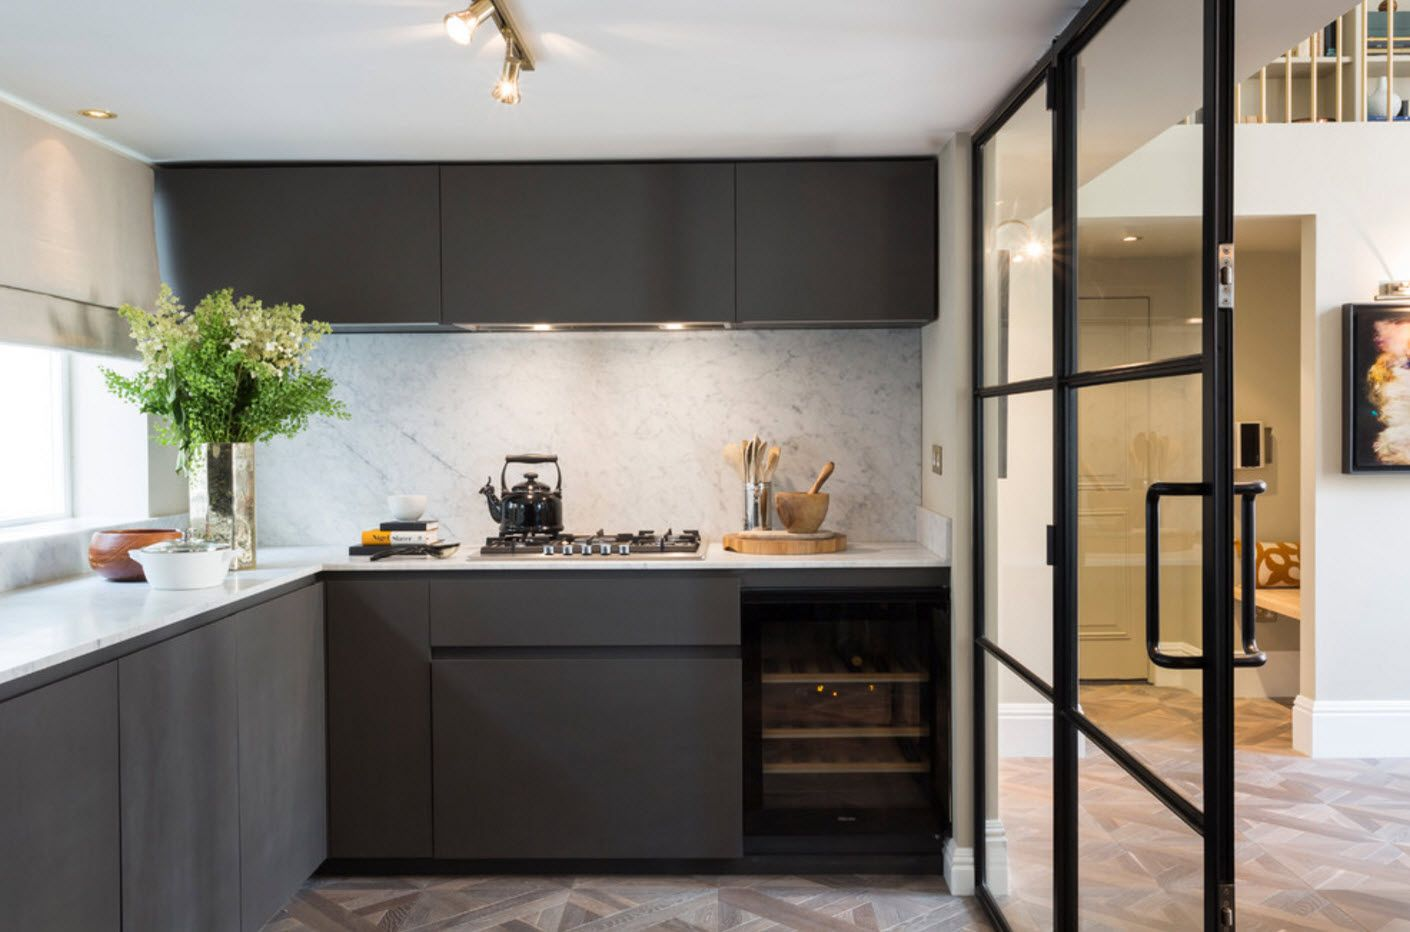 Black kitchen set facades look spectacular at the background of the white splashback